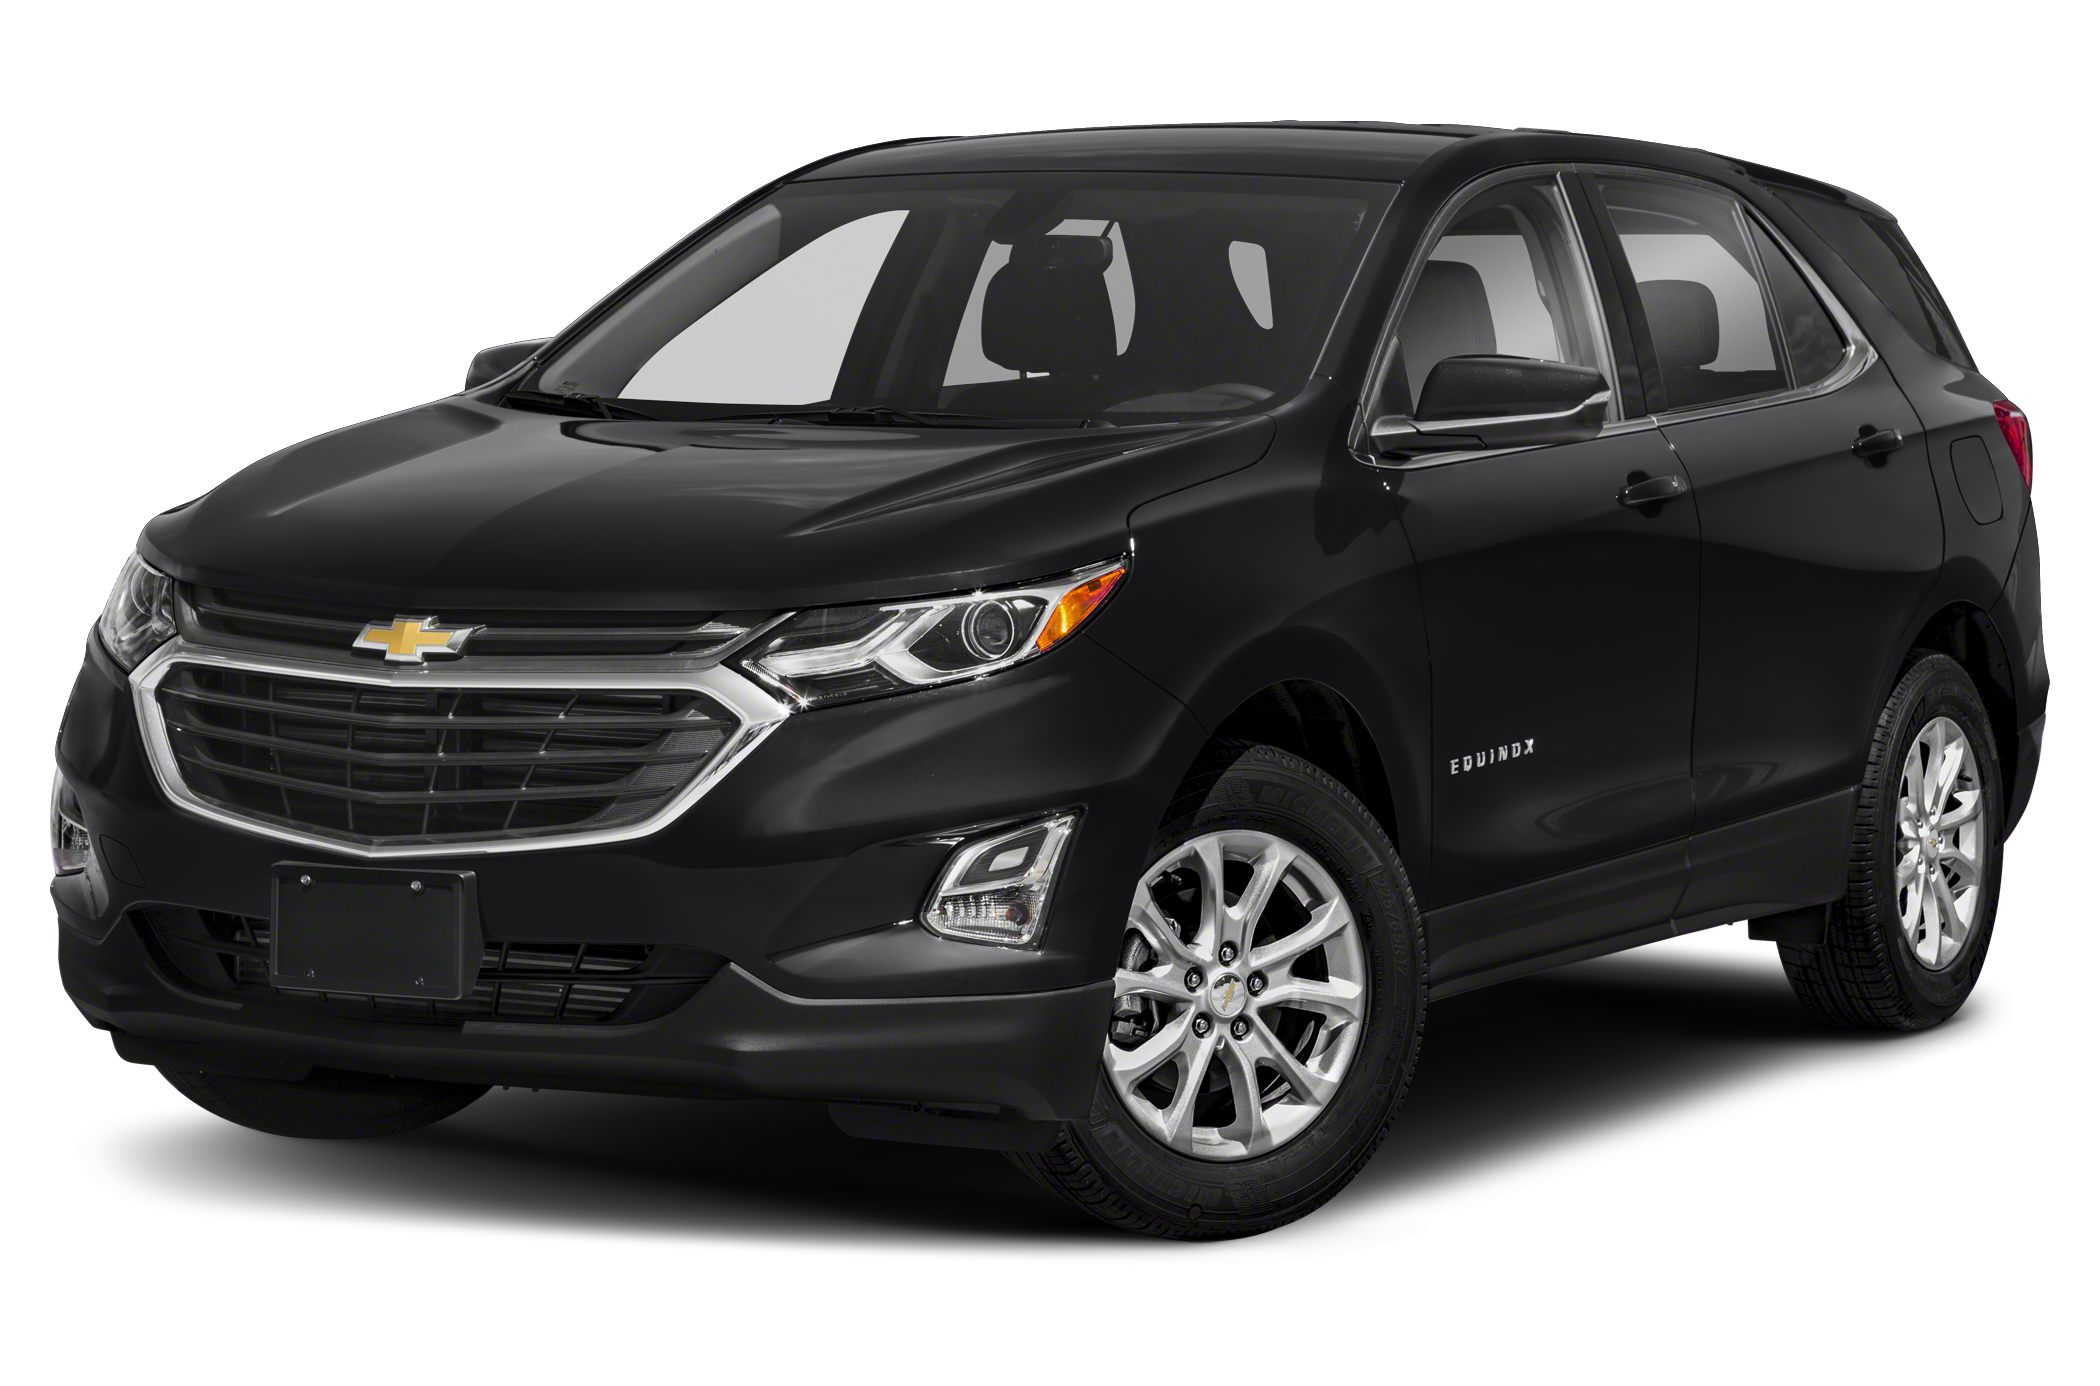 2020 Chevy Equinox Price, Design and Review